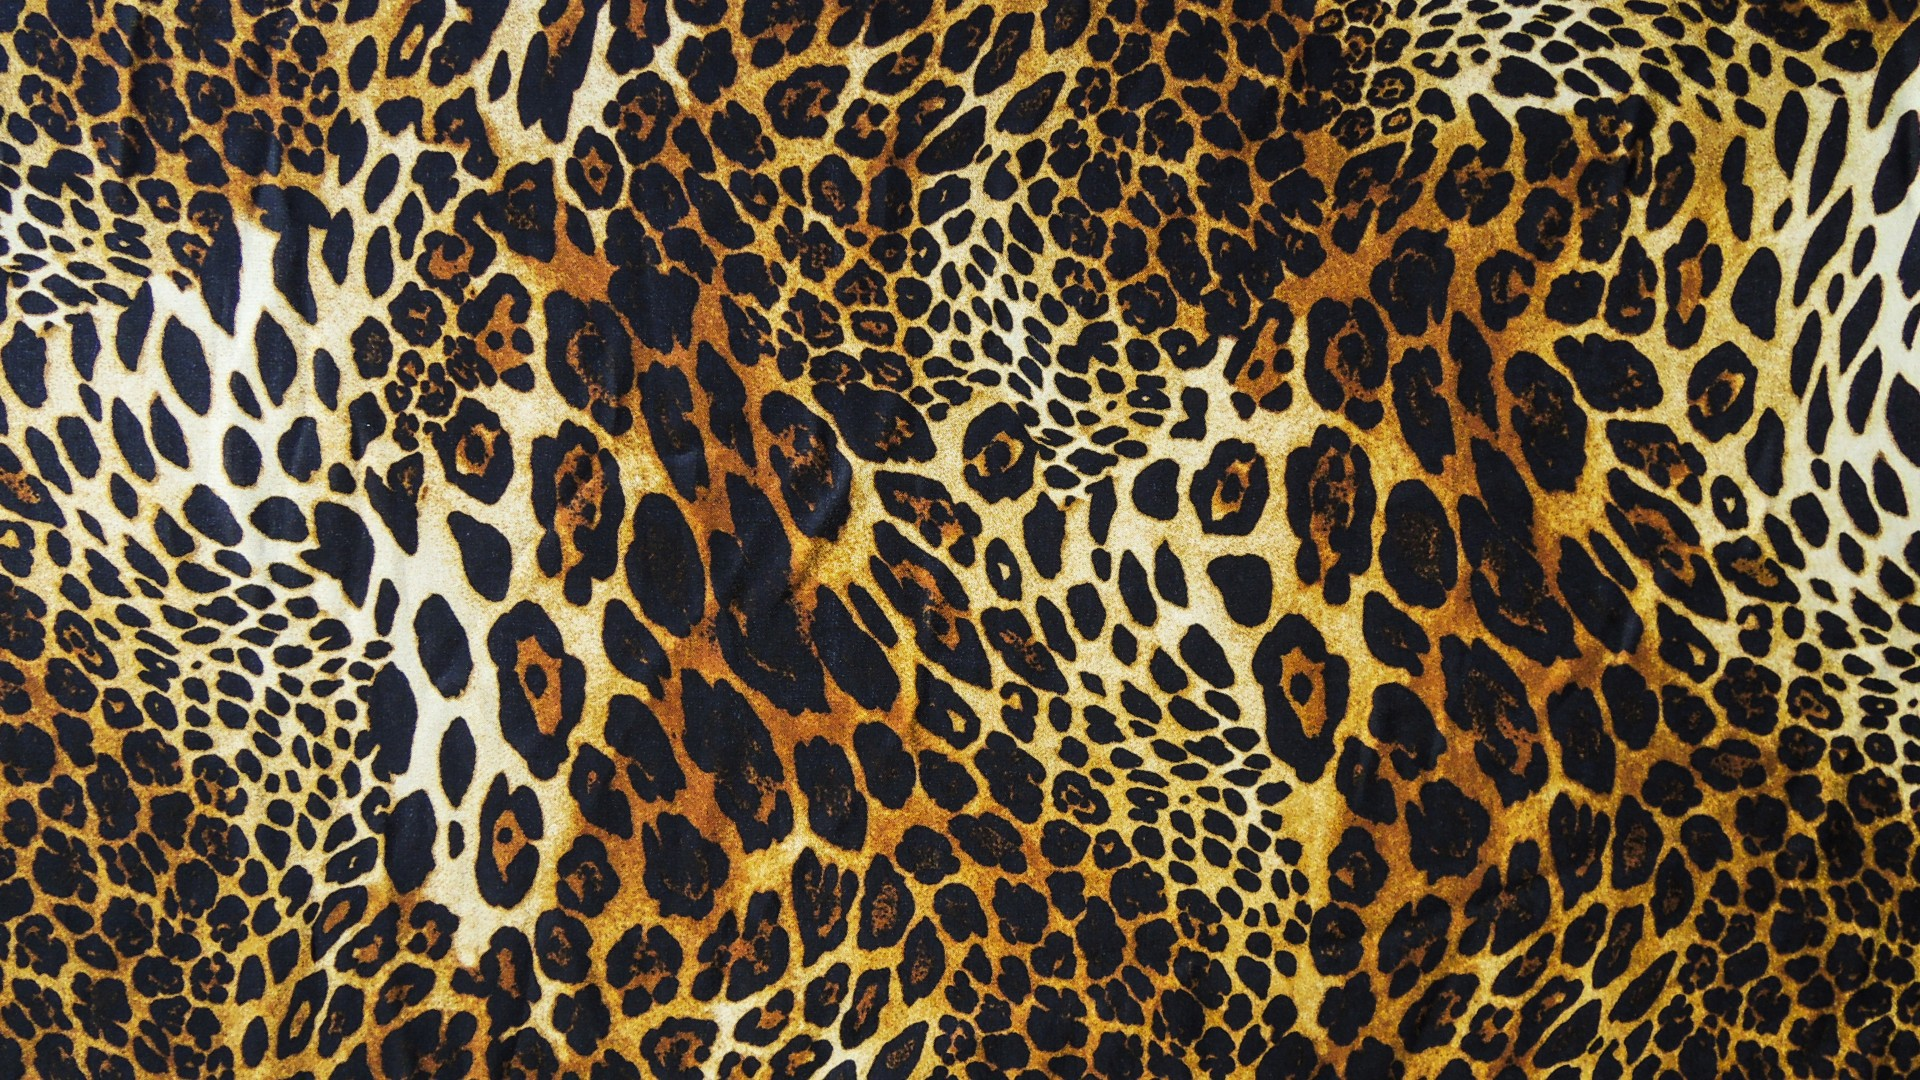 leopard-background-7